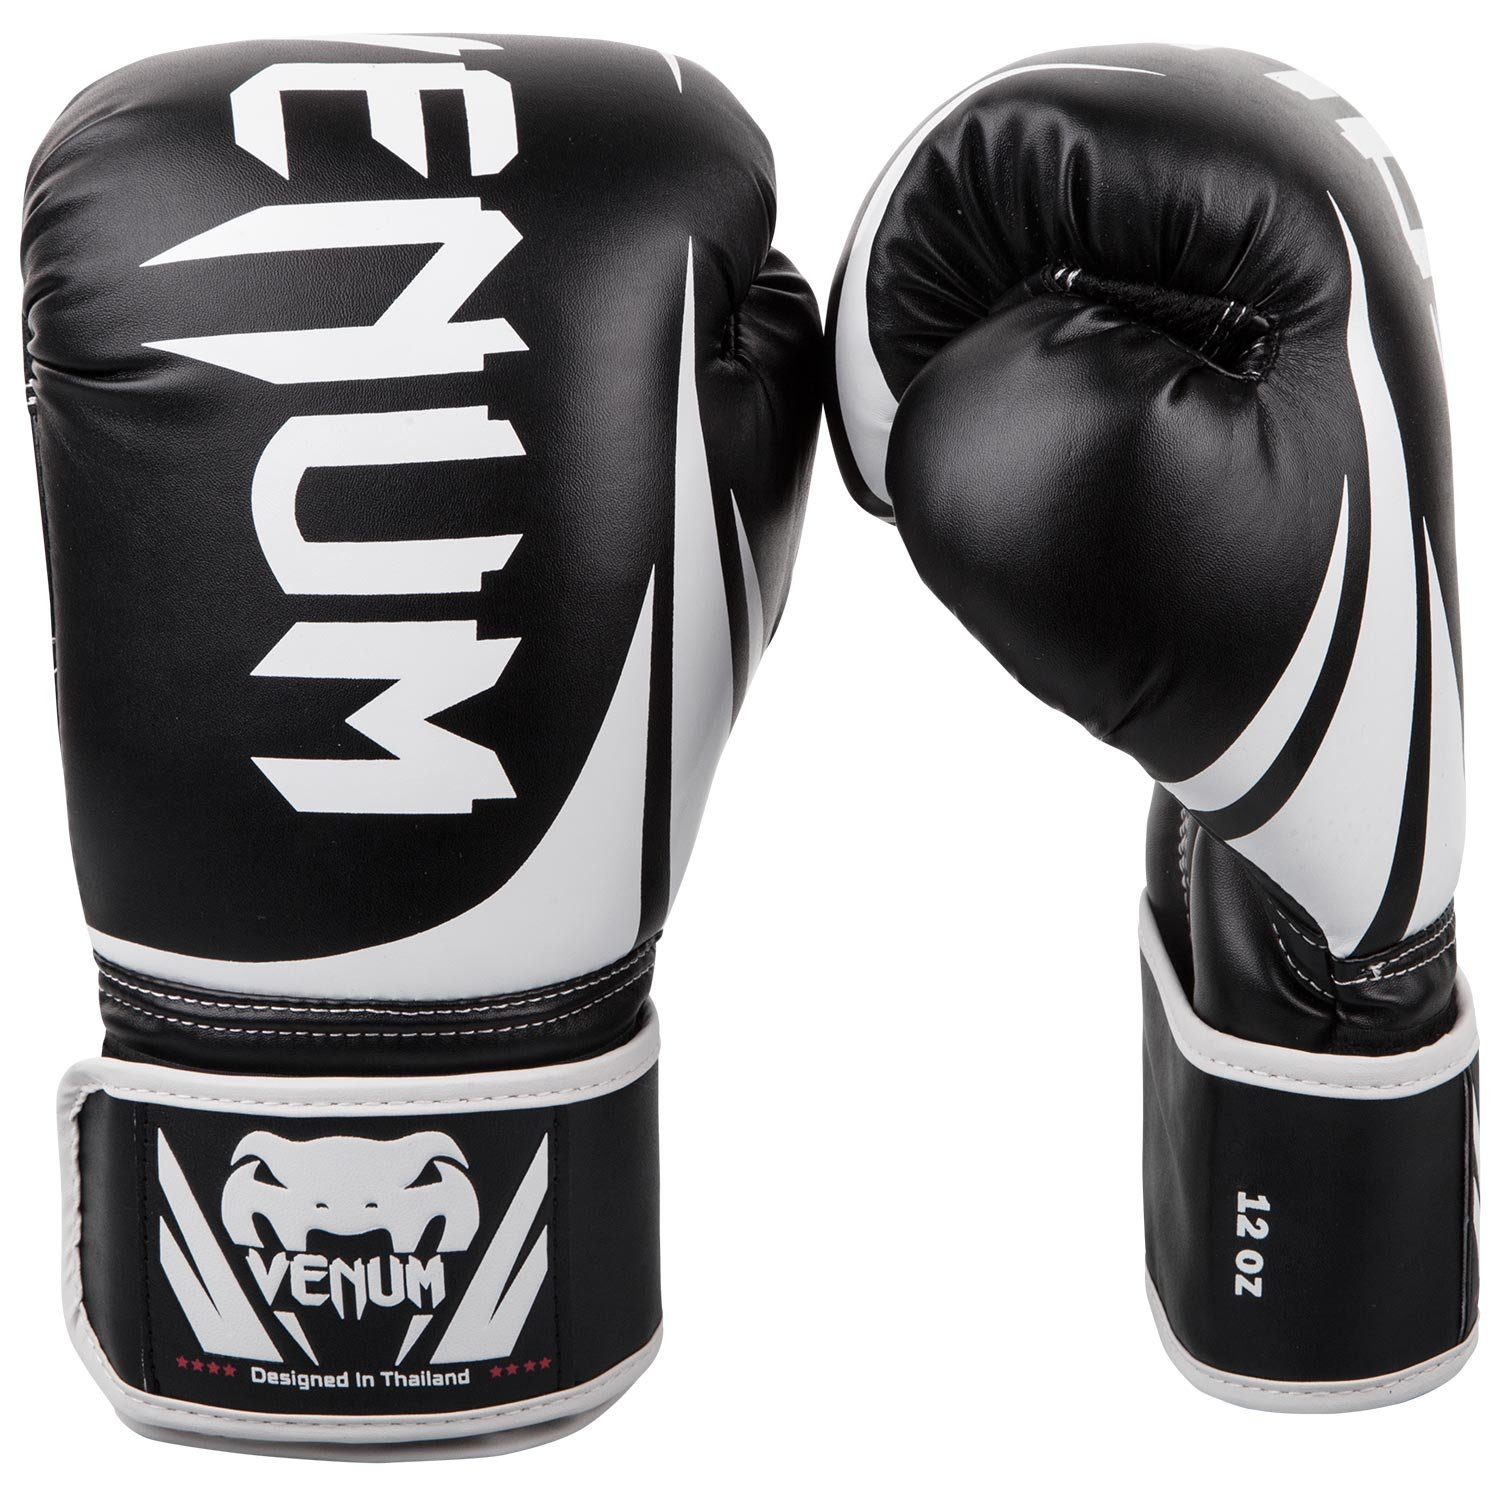 Top 16 Best Boxing Gloves (2020 Reviews & Buying Guide) 4